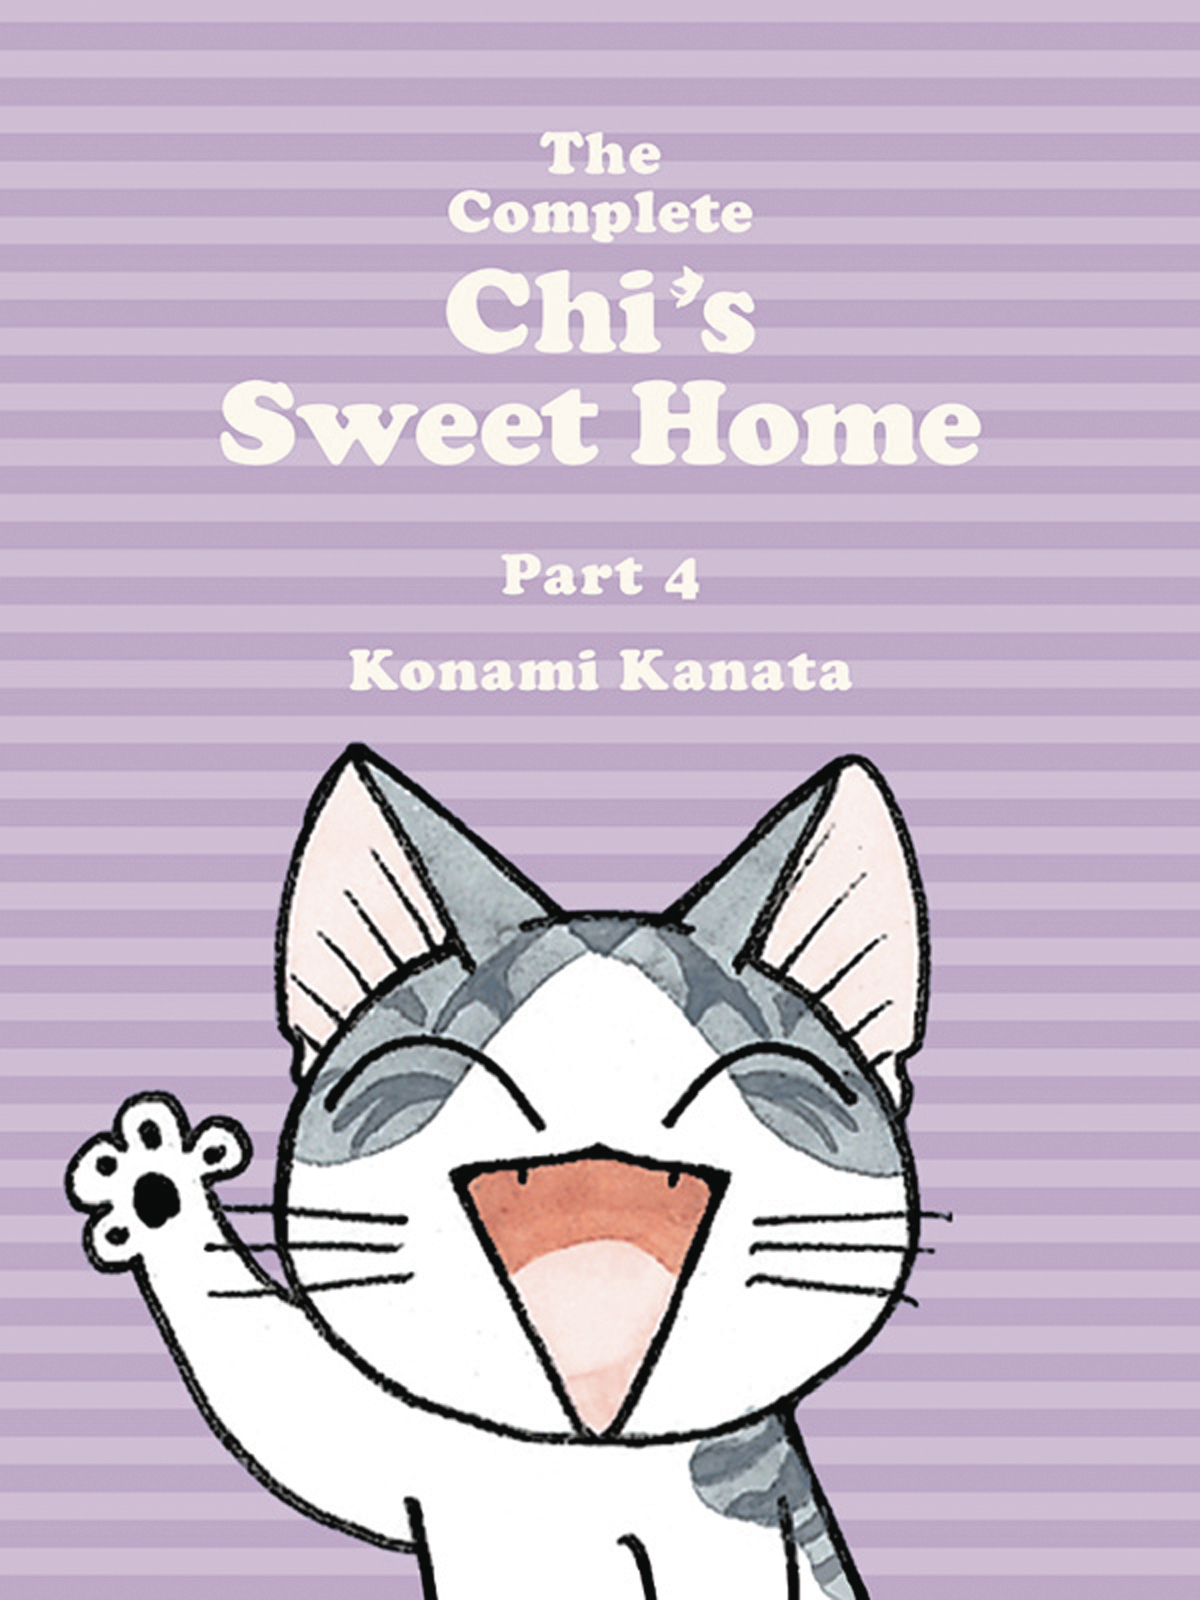 Complete Chi's Sweet Home Vol. 4